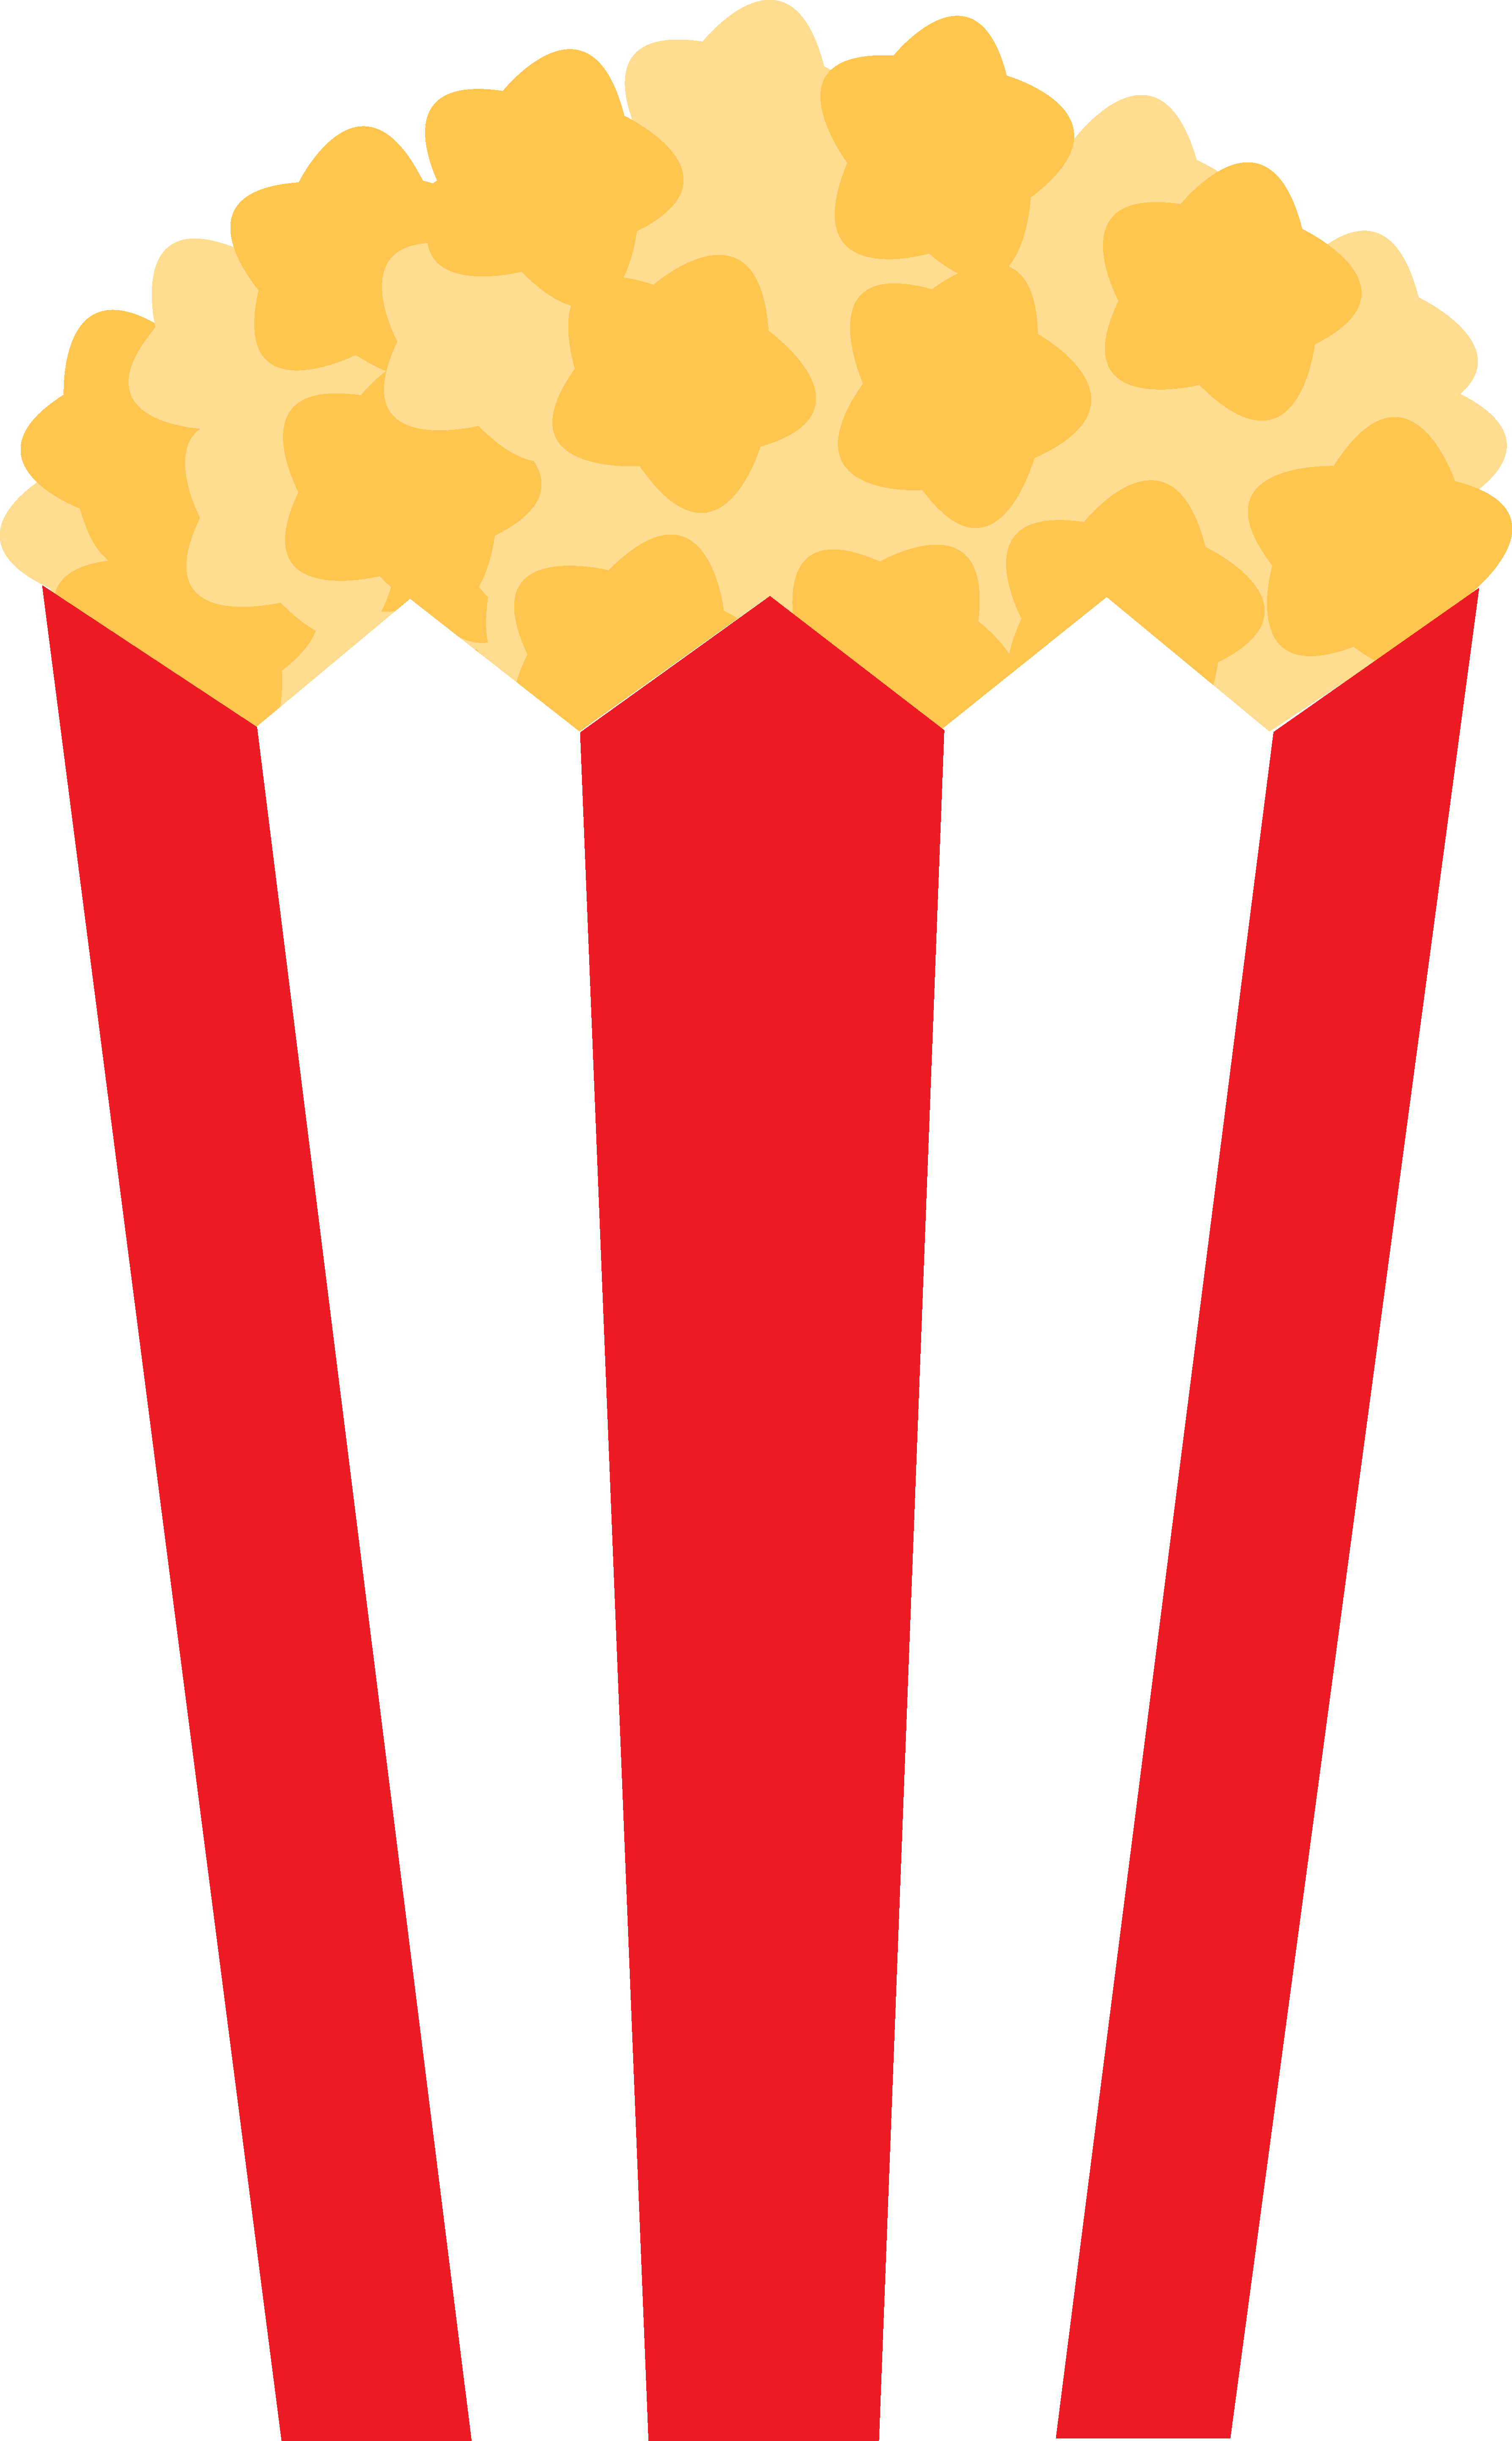 Relax clipart. Popcorn film free image